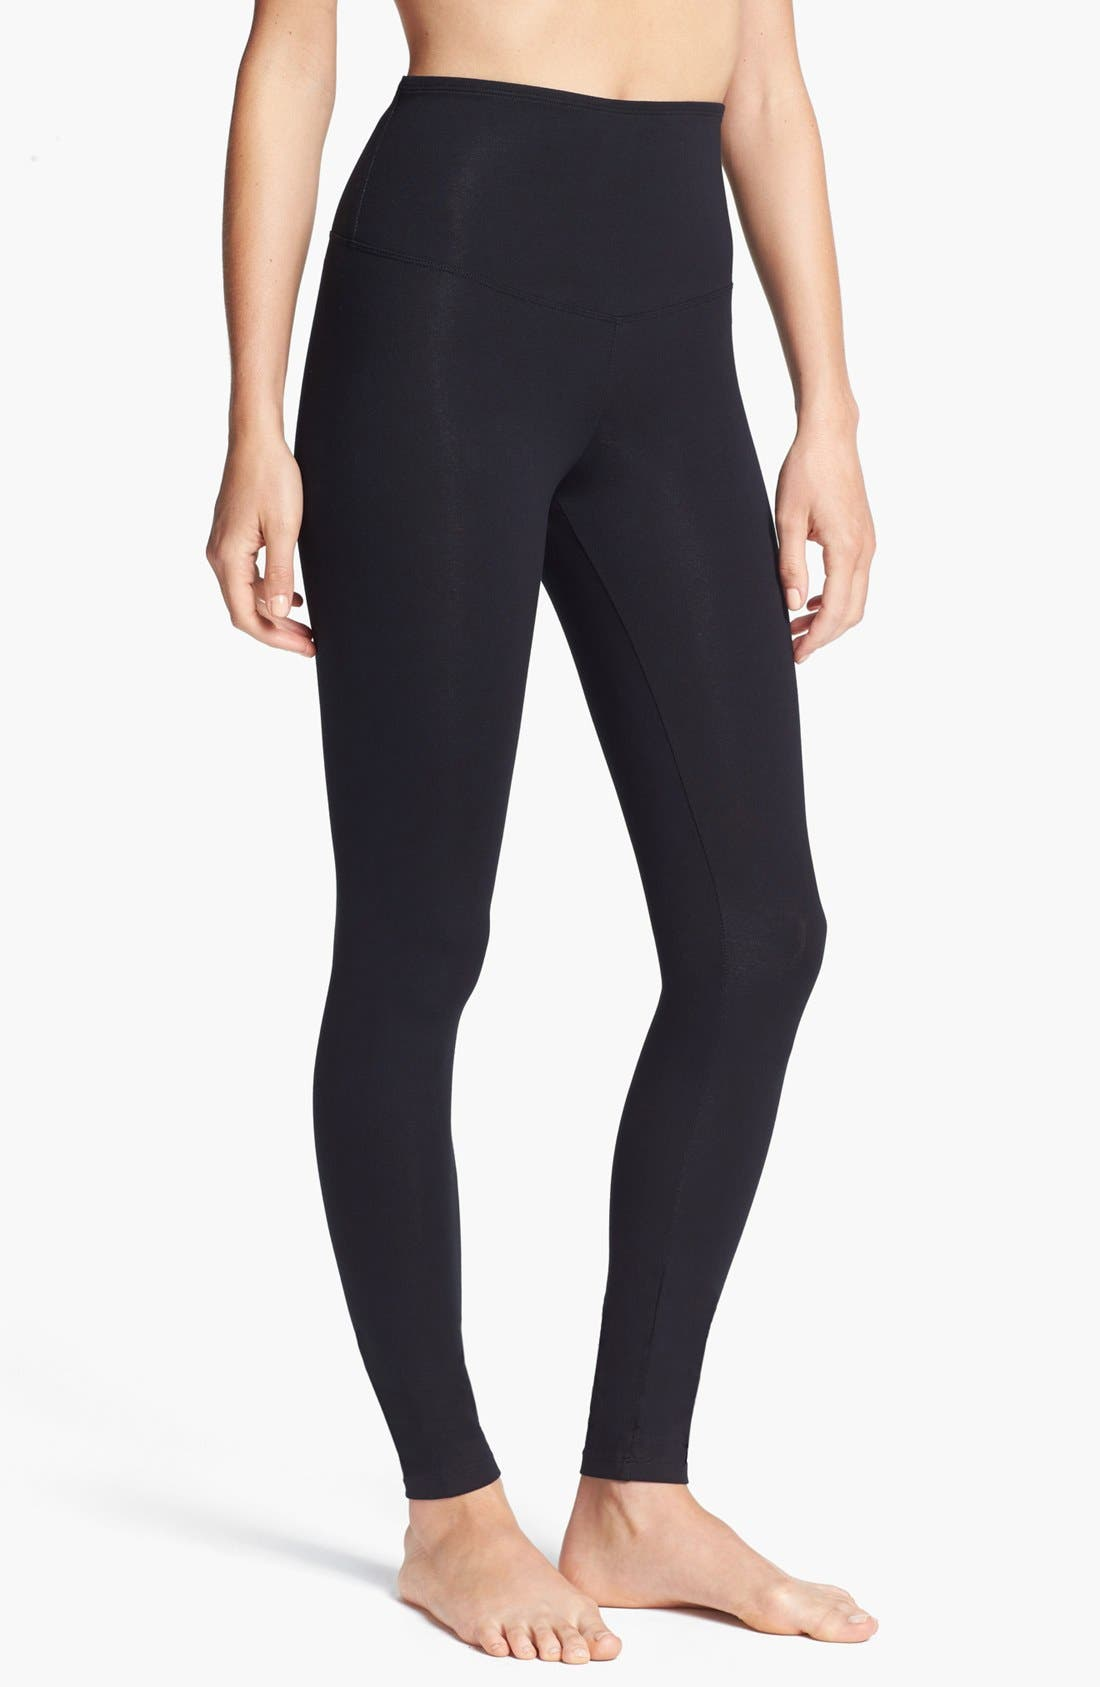 Yummie 'Rachel' High Waist Leggings (Regular & Plus Size)